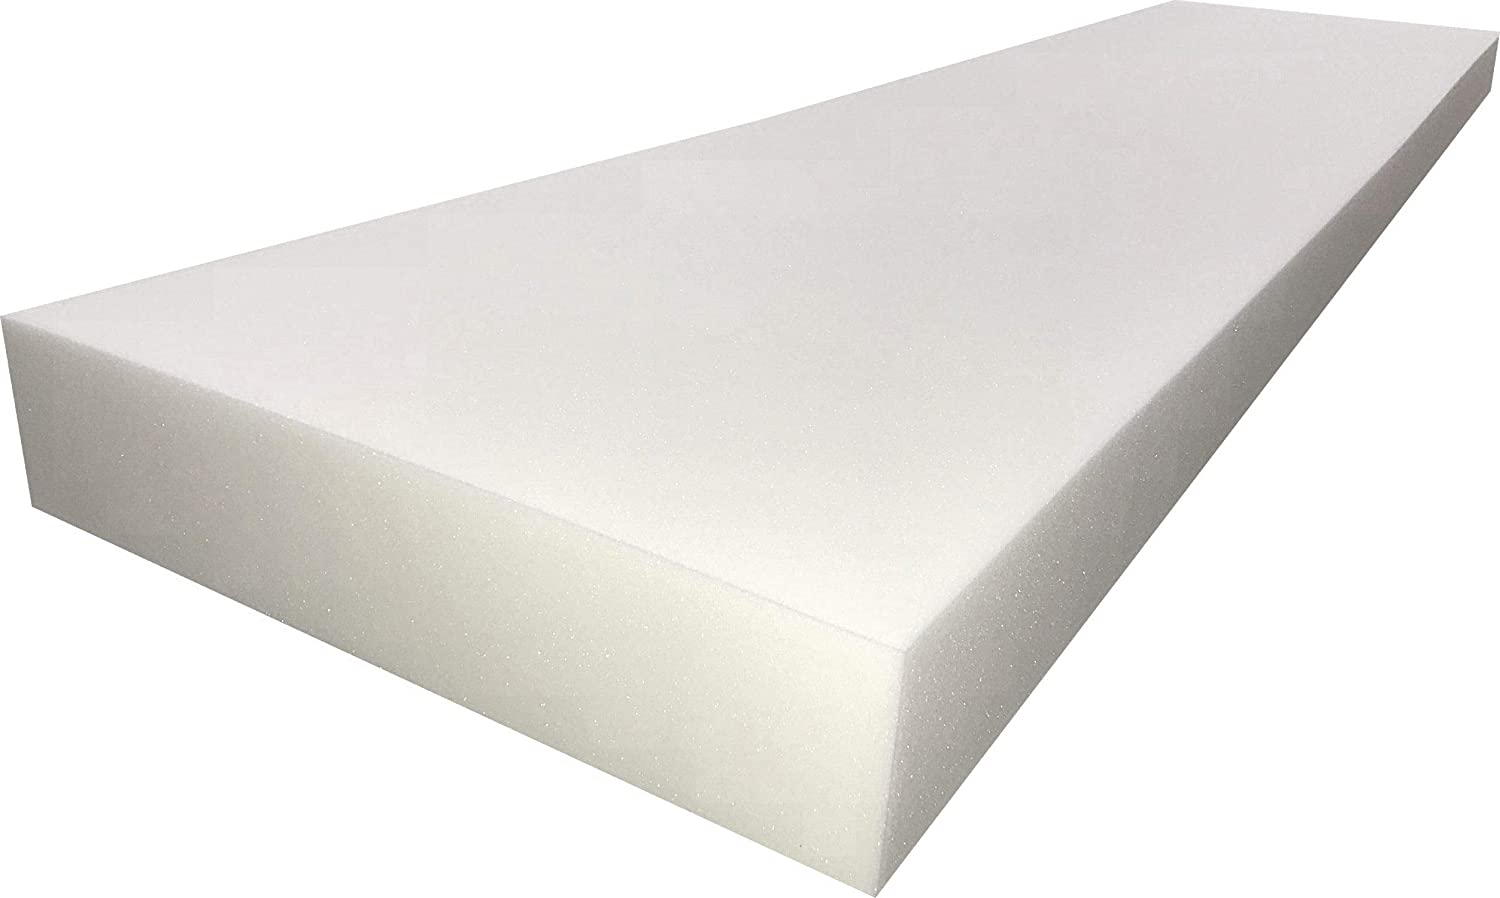 FoamTouch Upholstery Foam Cushion High Density 3 Height x 24 Width x 84 Length Made in USA